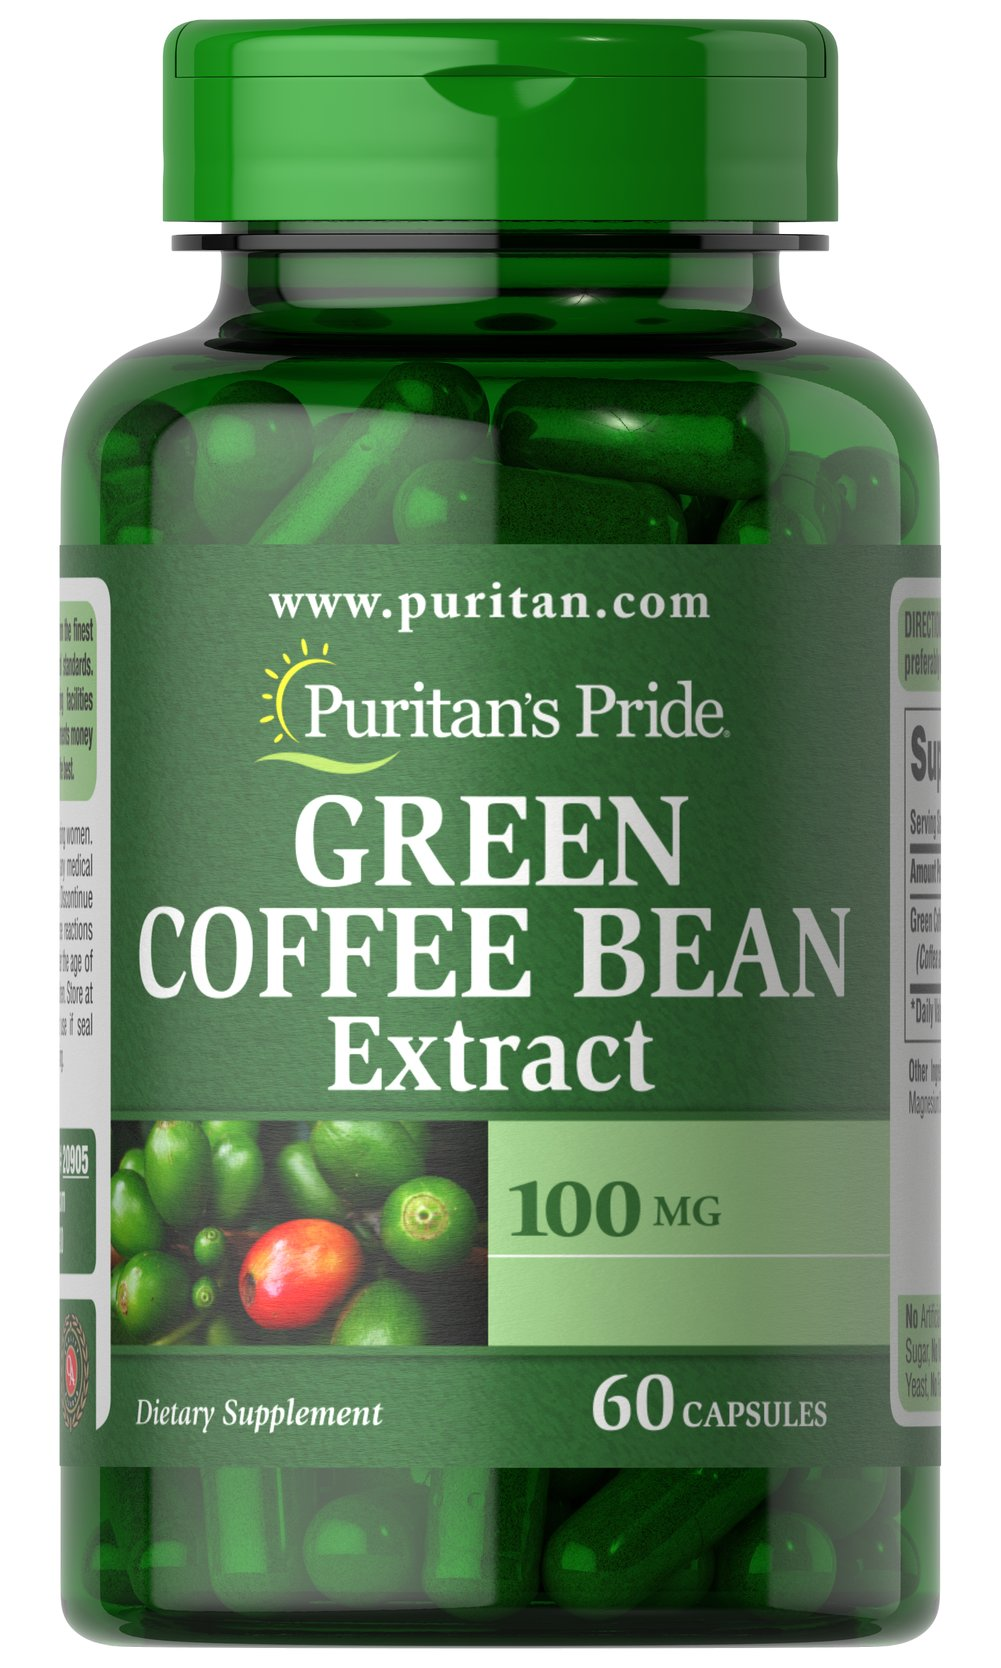 Green Coffee Bean Extract 100 mg Thumbnail Alternate Bottle View